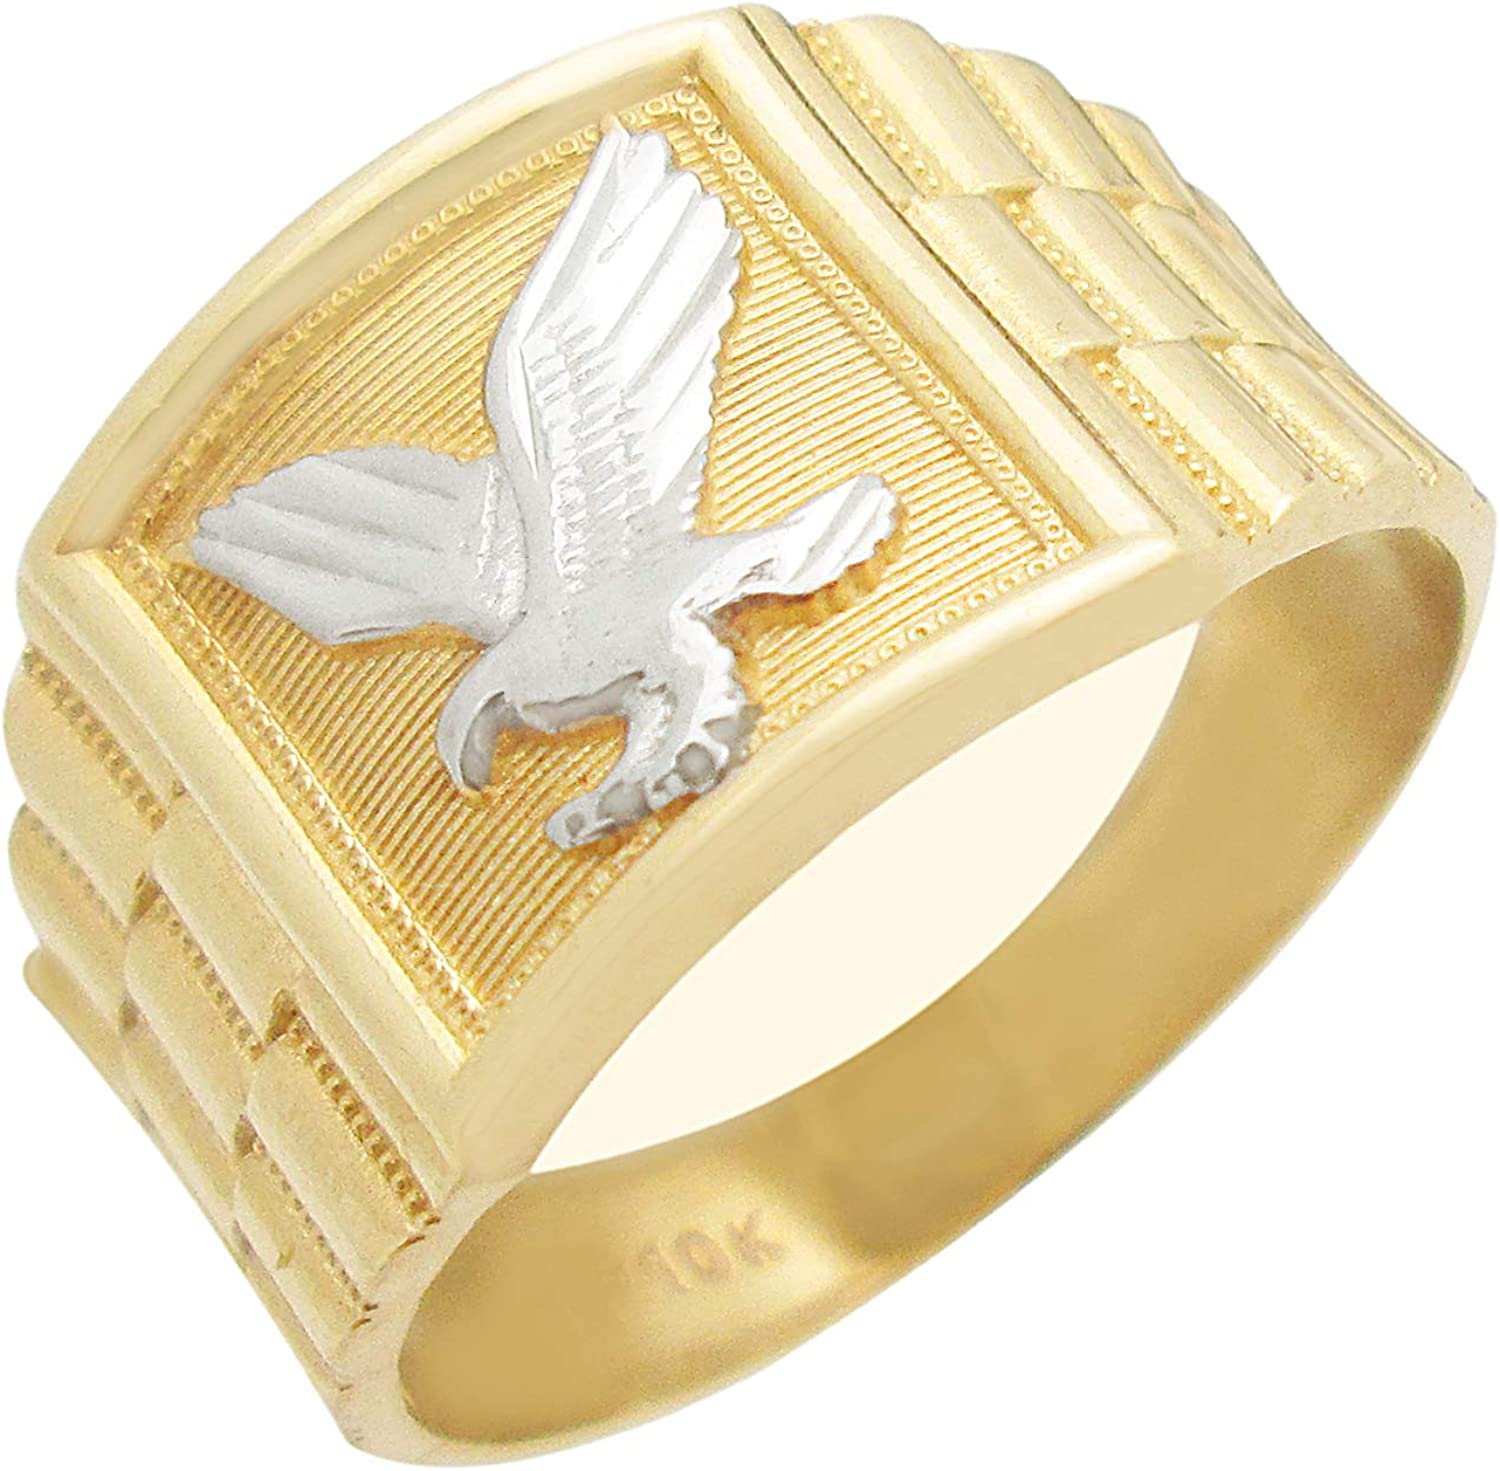 AMZ Jewelry 10K Yellow Gold Mens Eagle Ring